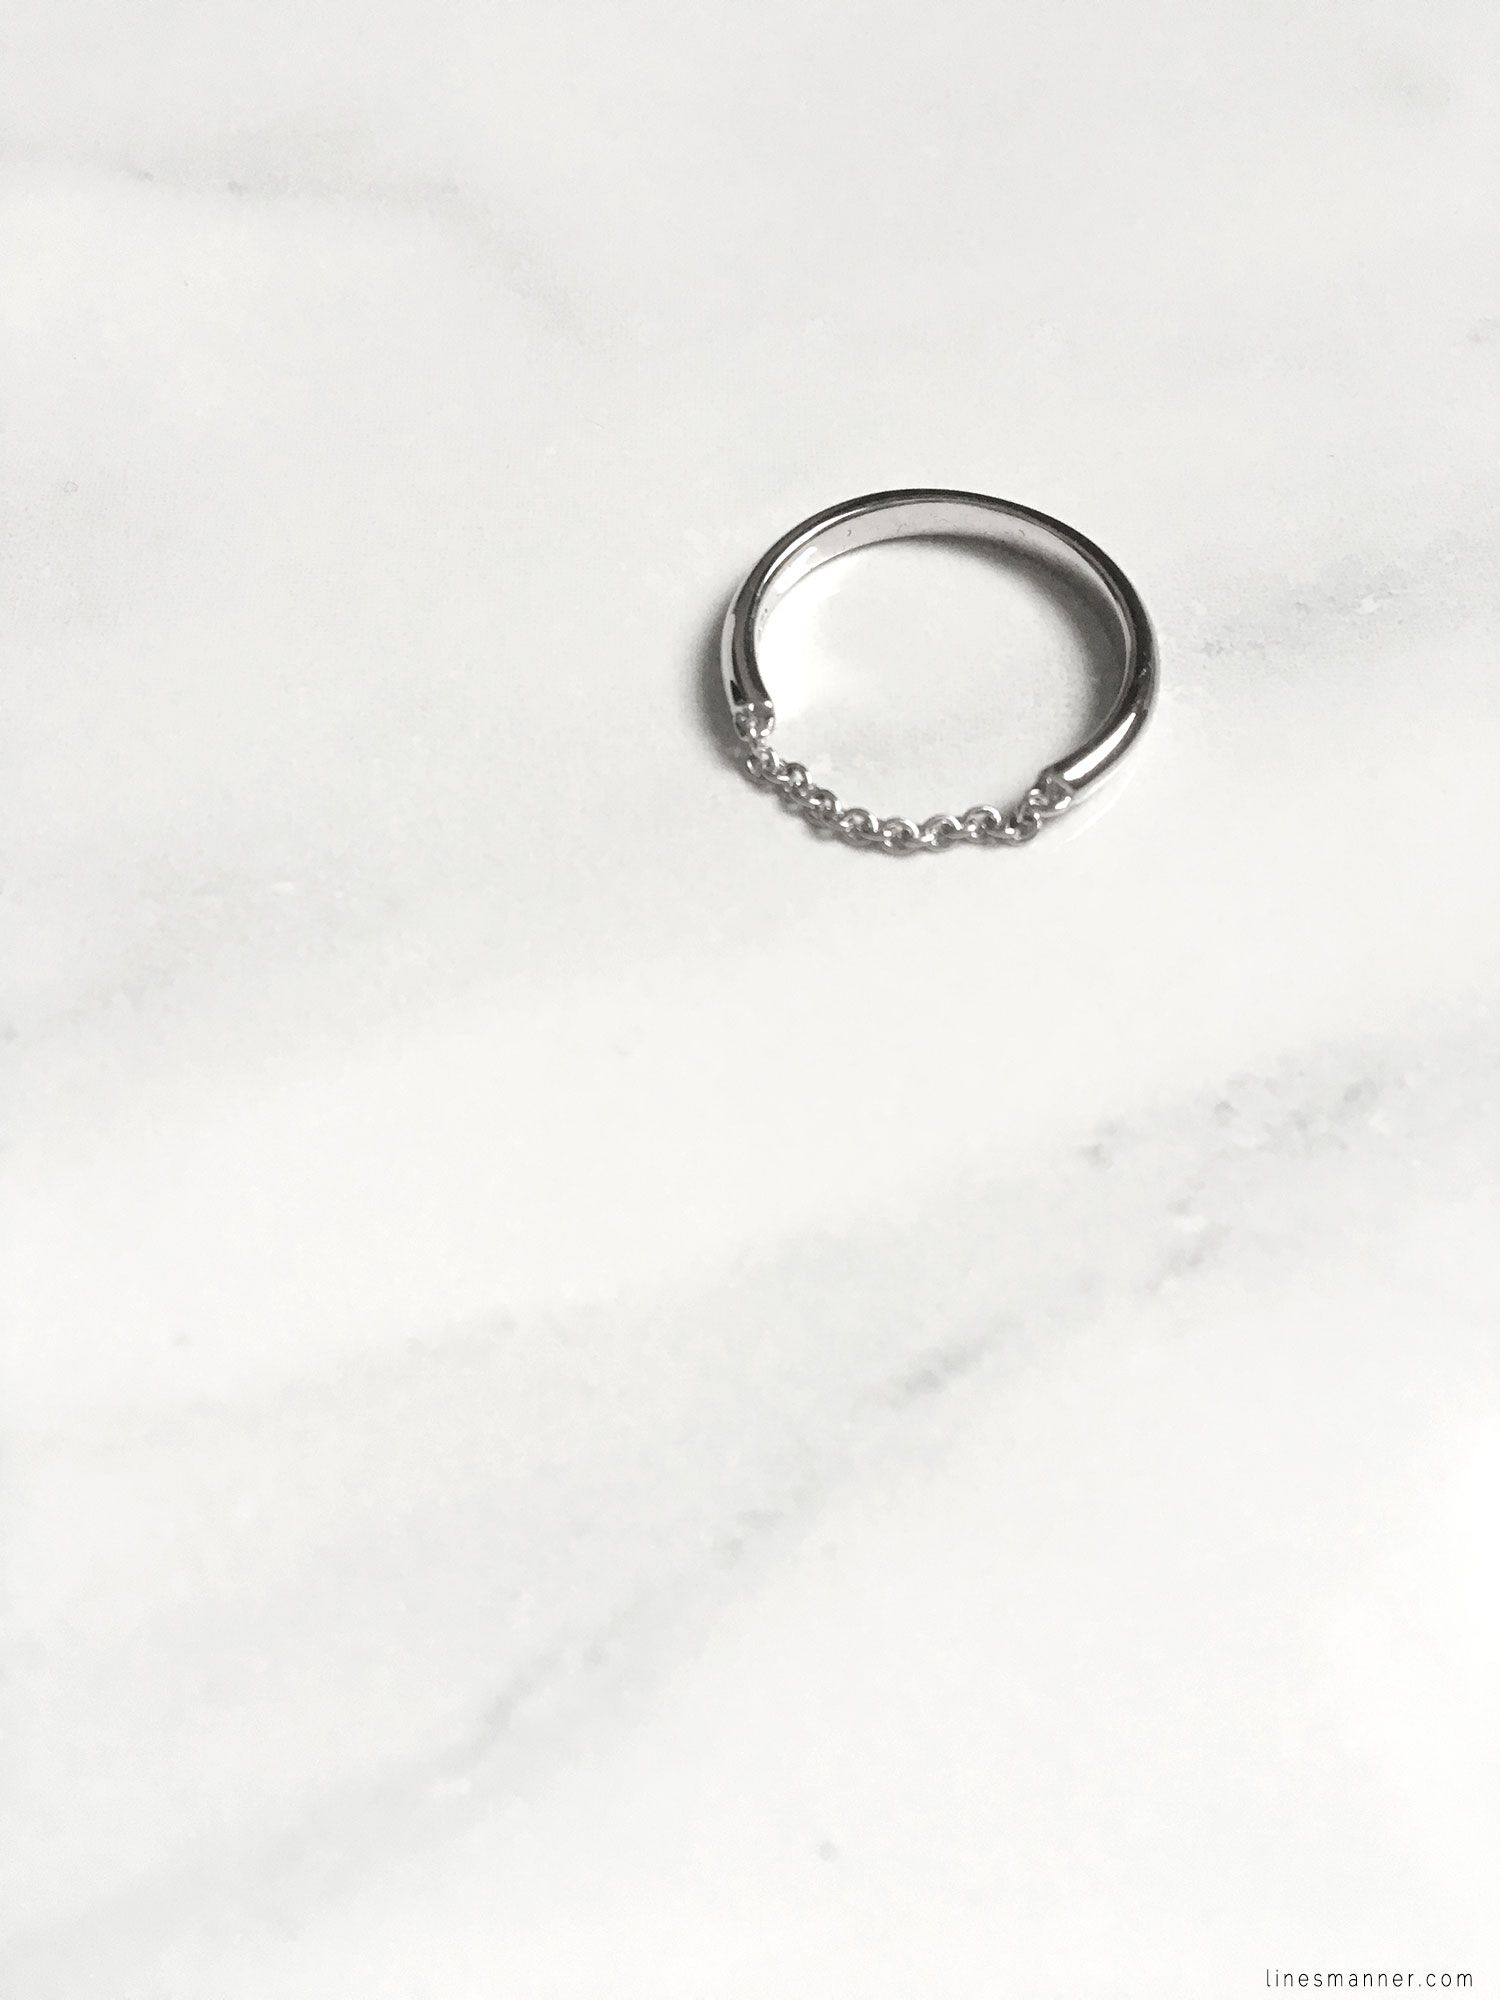 Lines Manner Details Mejuri Marble Essentials Minimal Jewellery Silver Ring Delicate Monochrome Simpl Sterling Silver Promise Rings Delicate Rings Silver Rings